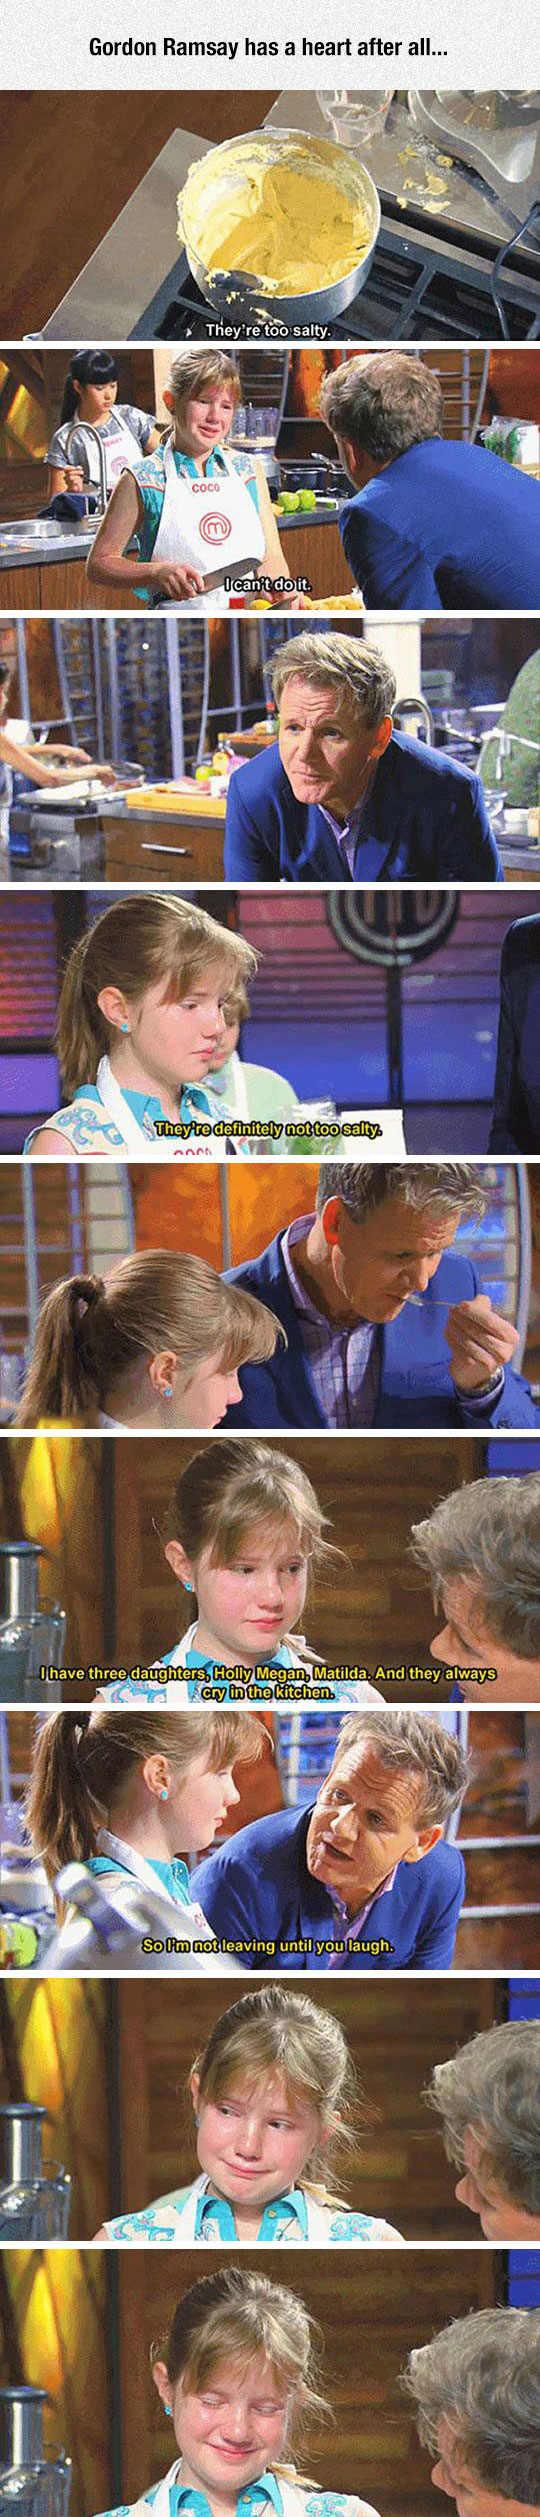 cool-Gordon-Ramsay-girl-crying-Mastechef